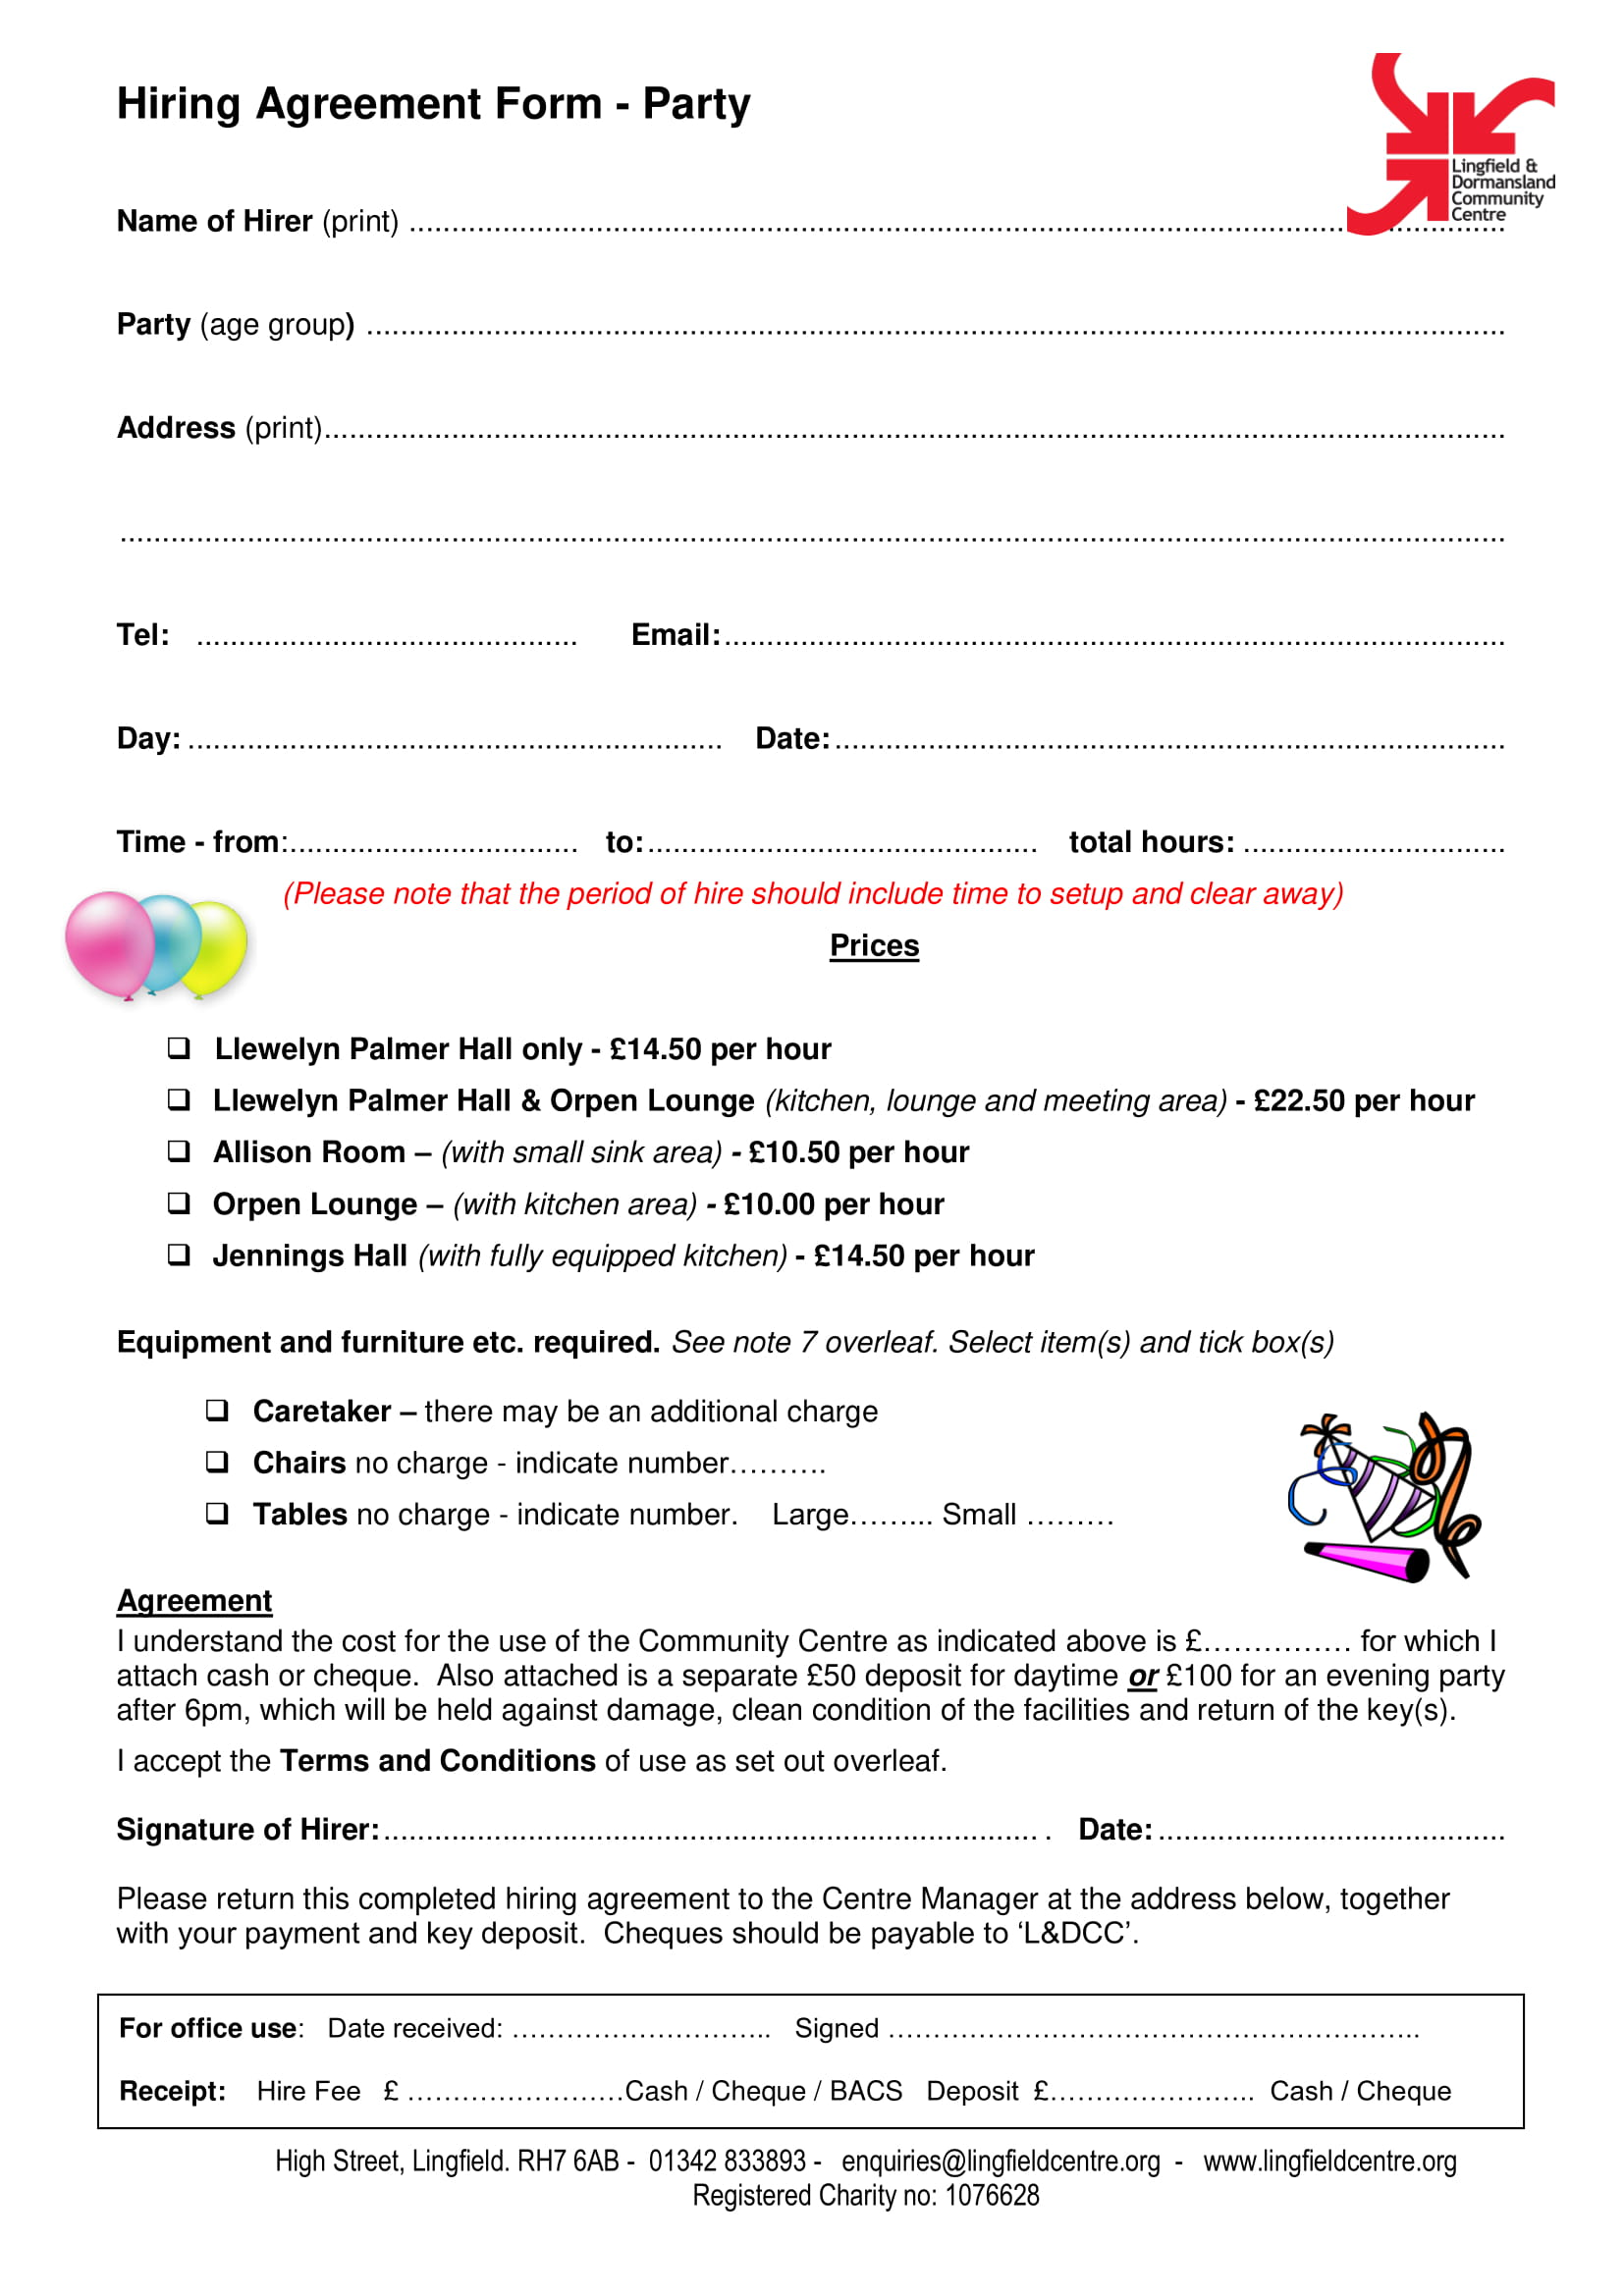 party hire agreement contract form 1